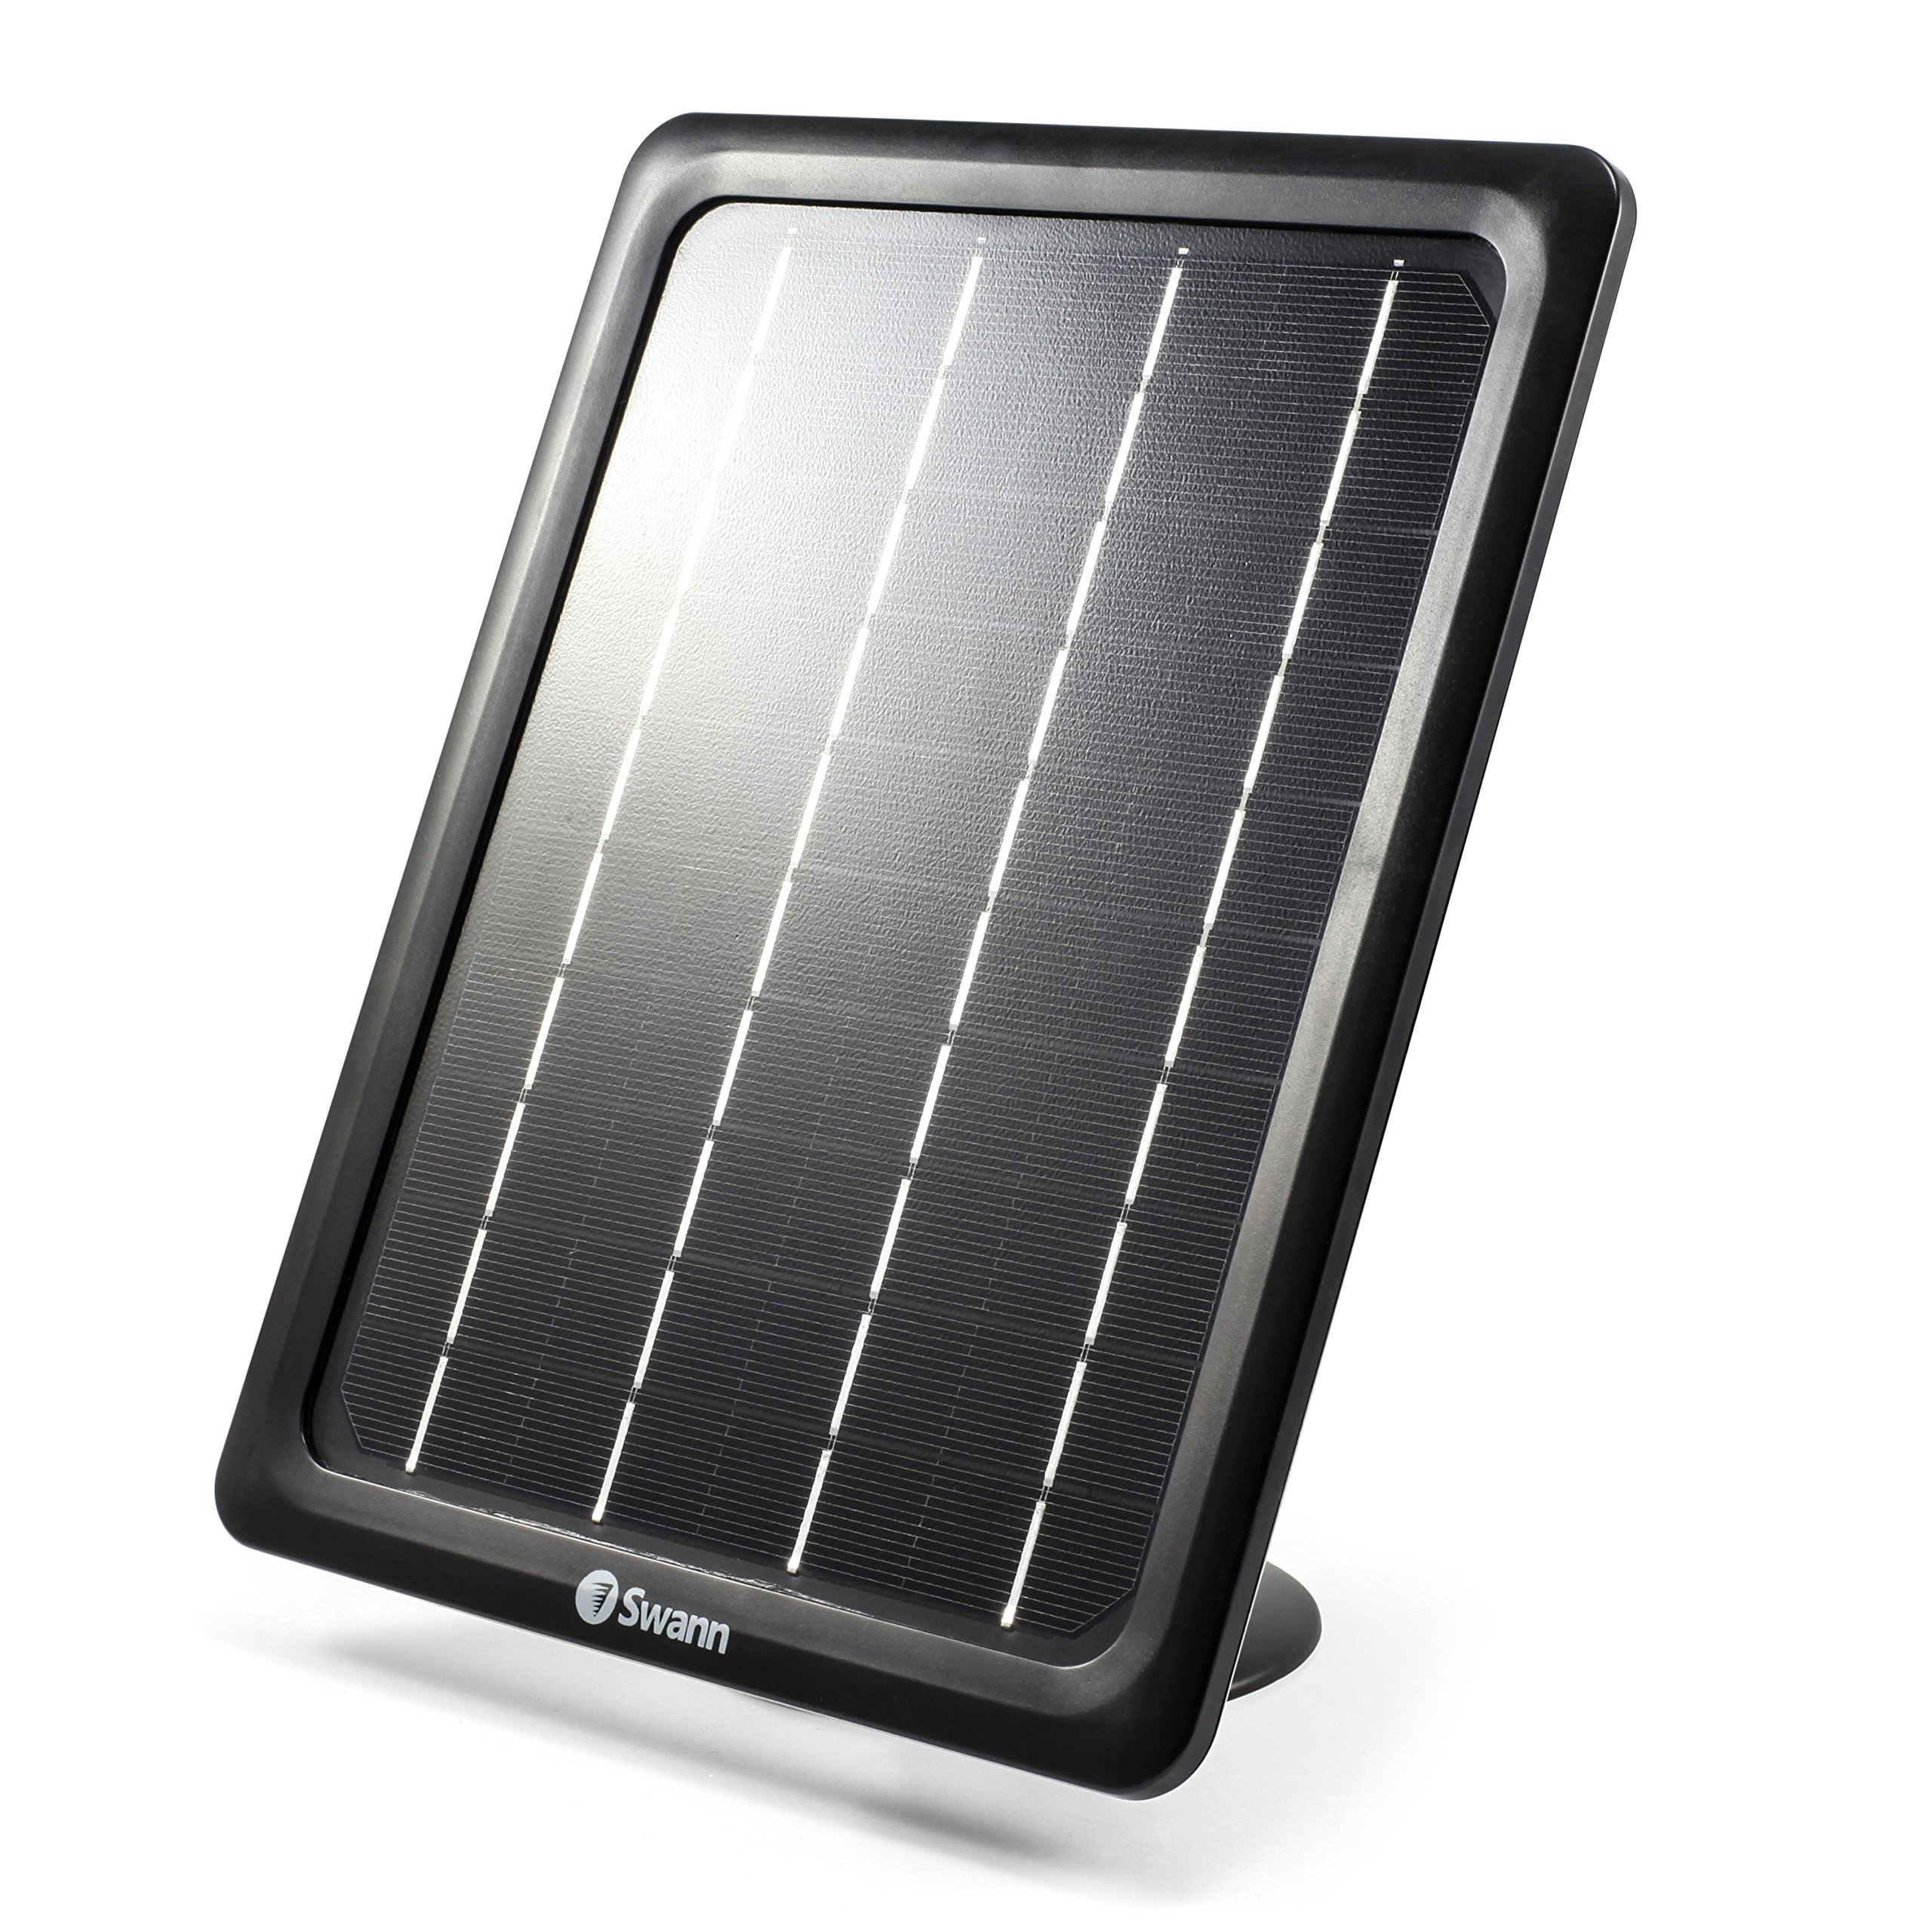 Swann SWWHD-INTSOL-GL ADD ON Solar Panel for SWWHD-Intcam, Black by Swann